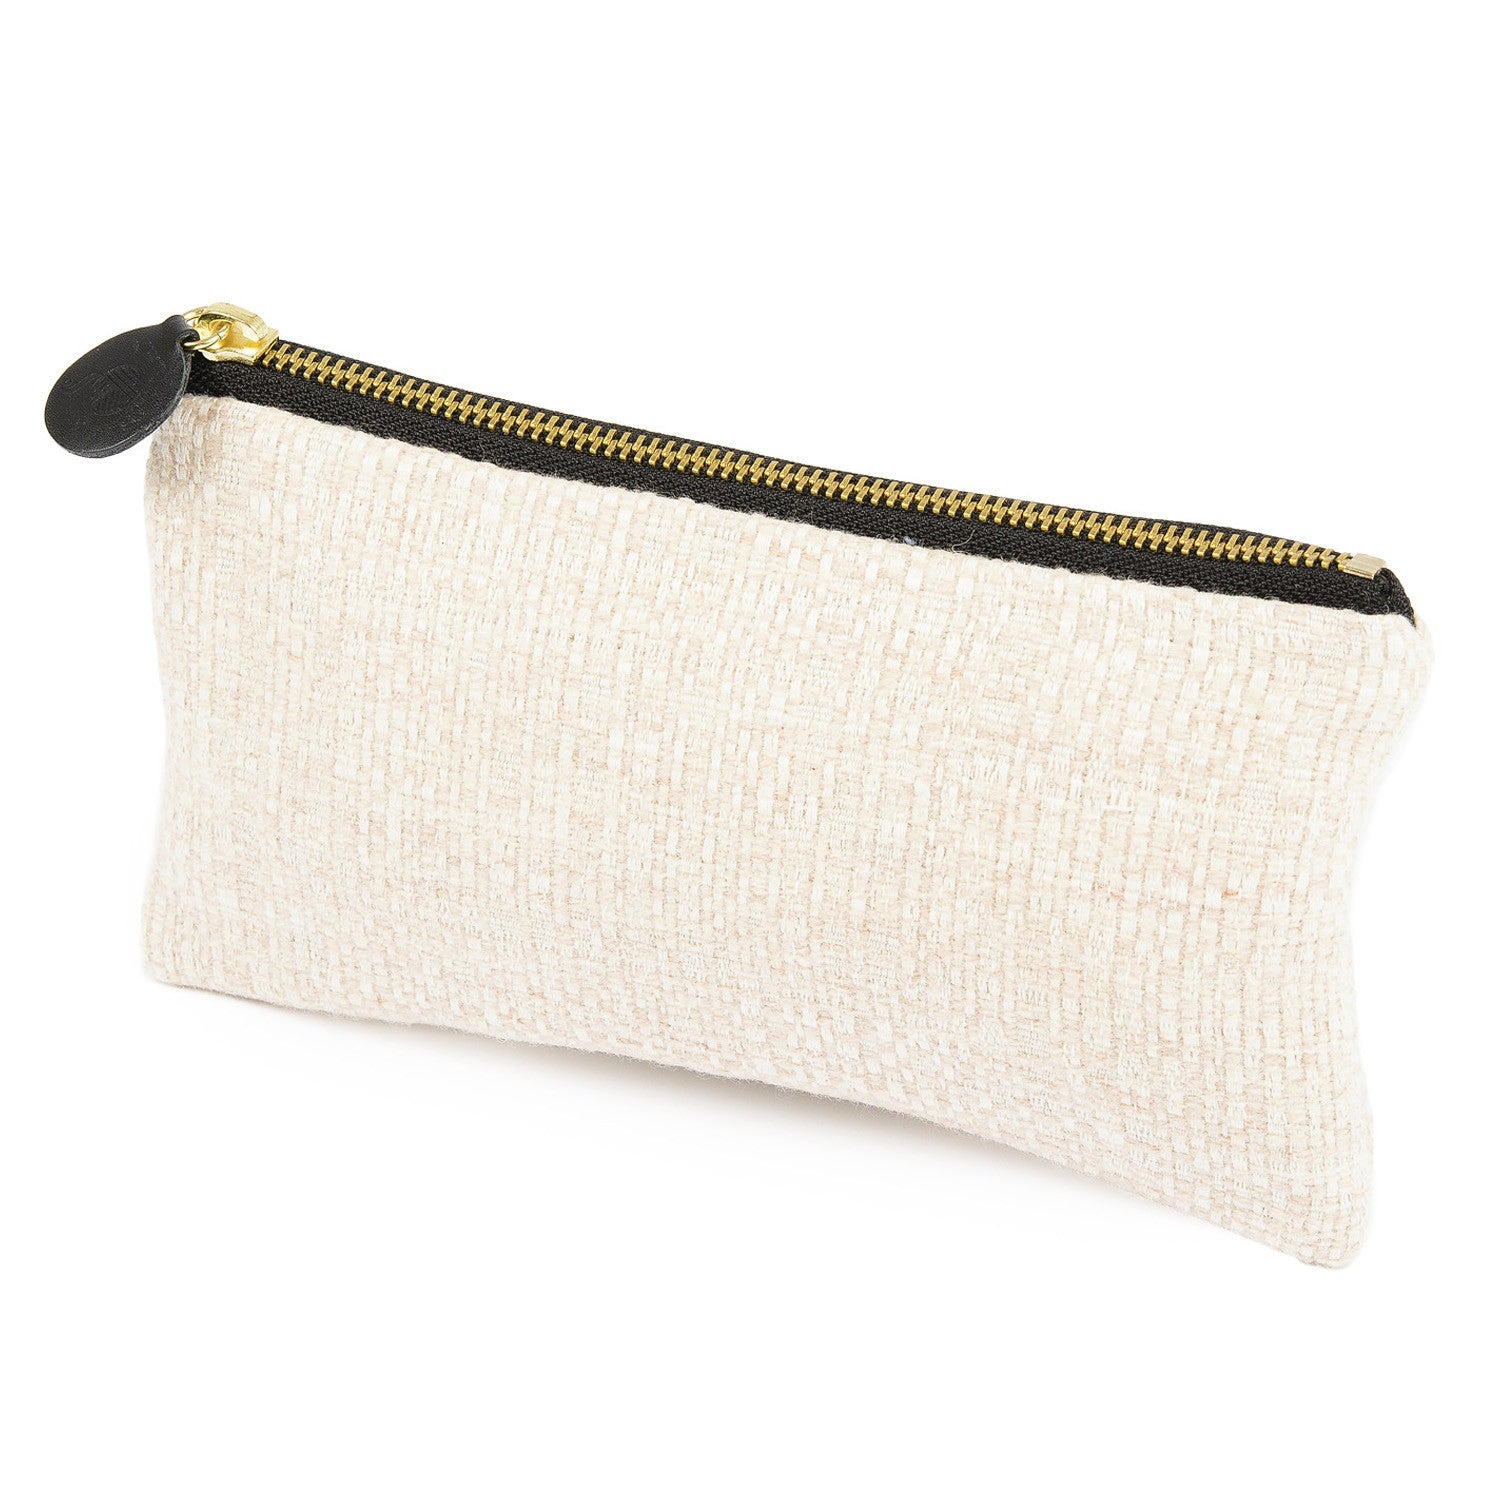 Merino Lambswool Zip Purse - Cove Ecru - Tori Murphy Ltd